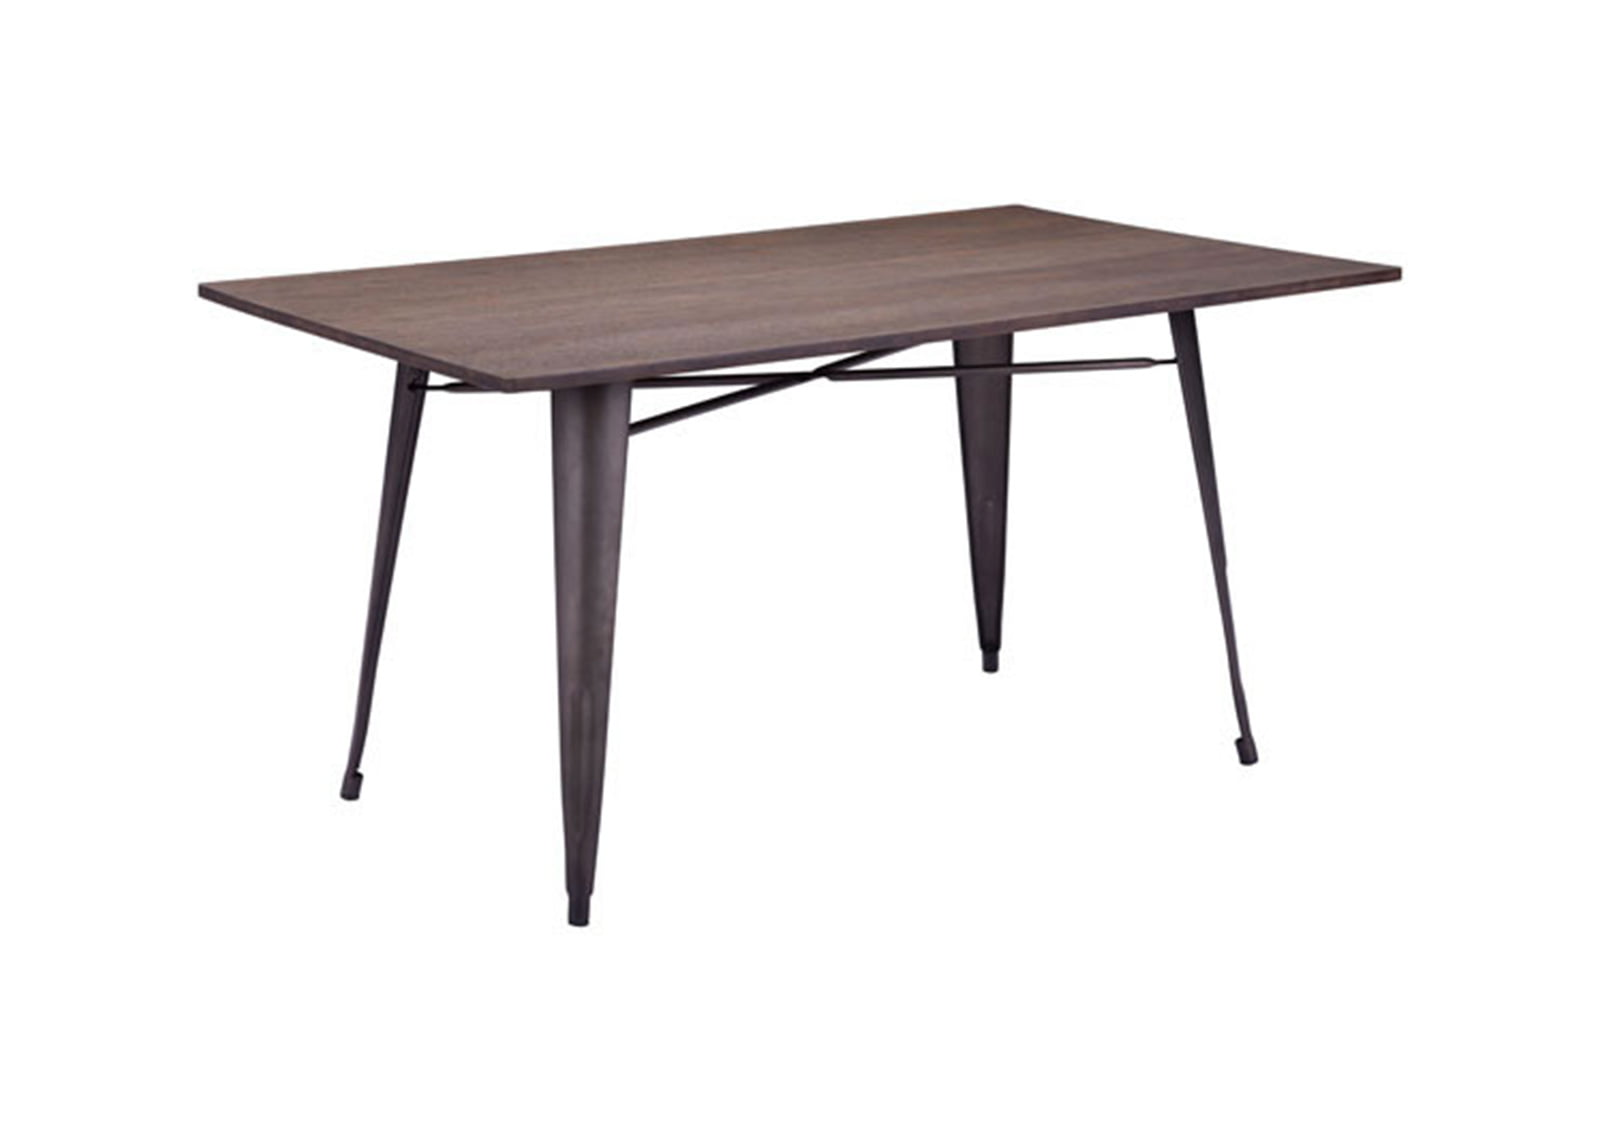 Titus rectangular dining table rustic wood furnishplus Rustic wood dining table